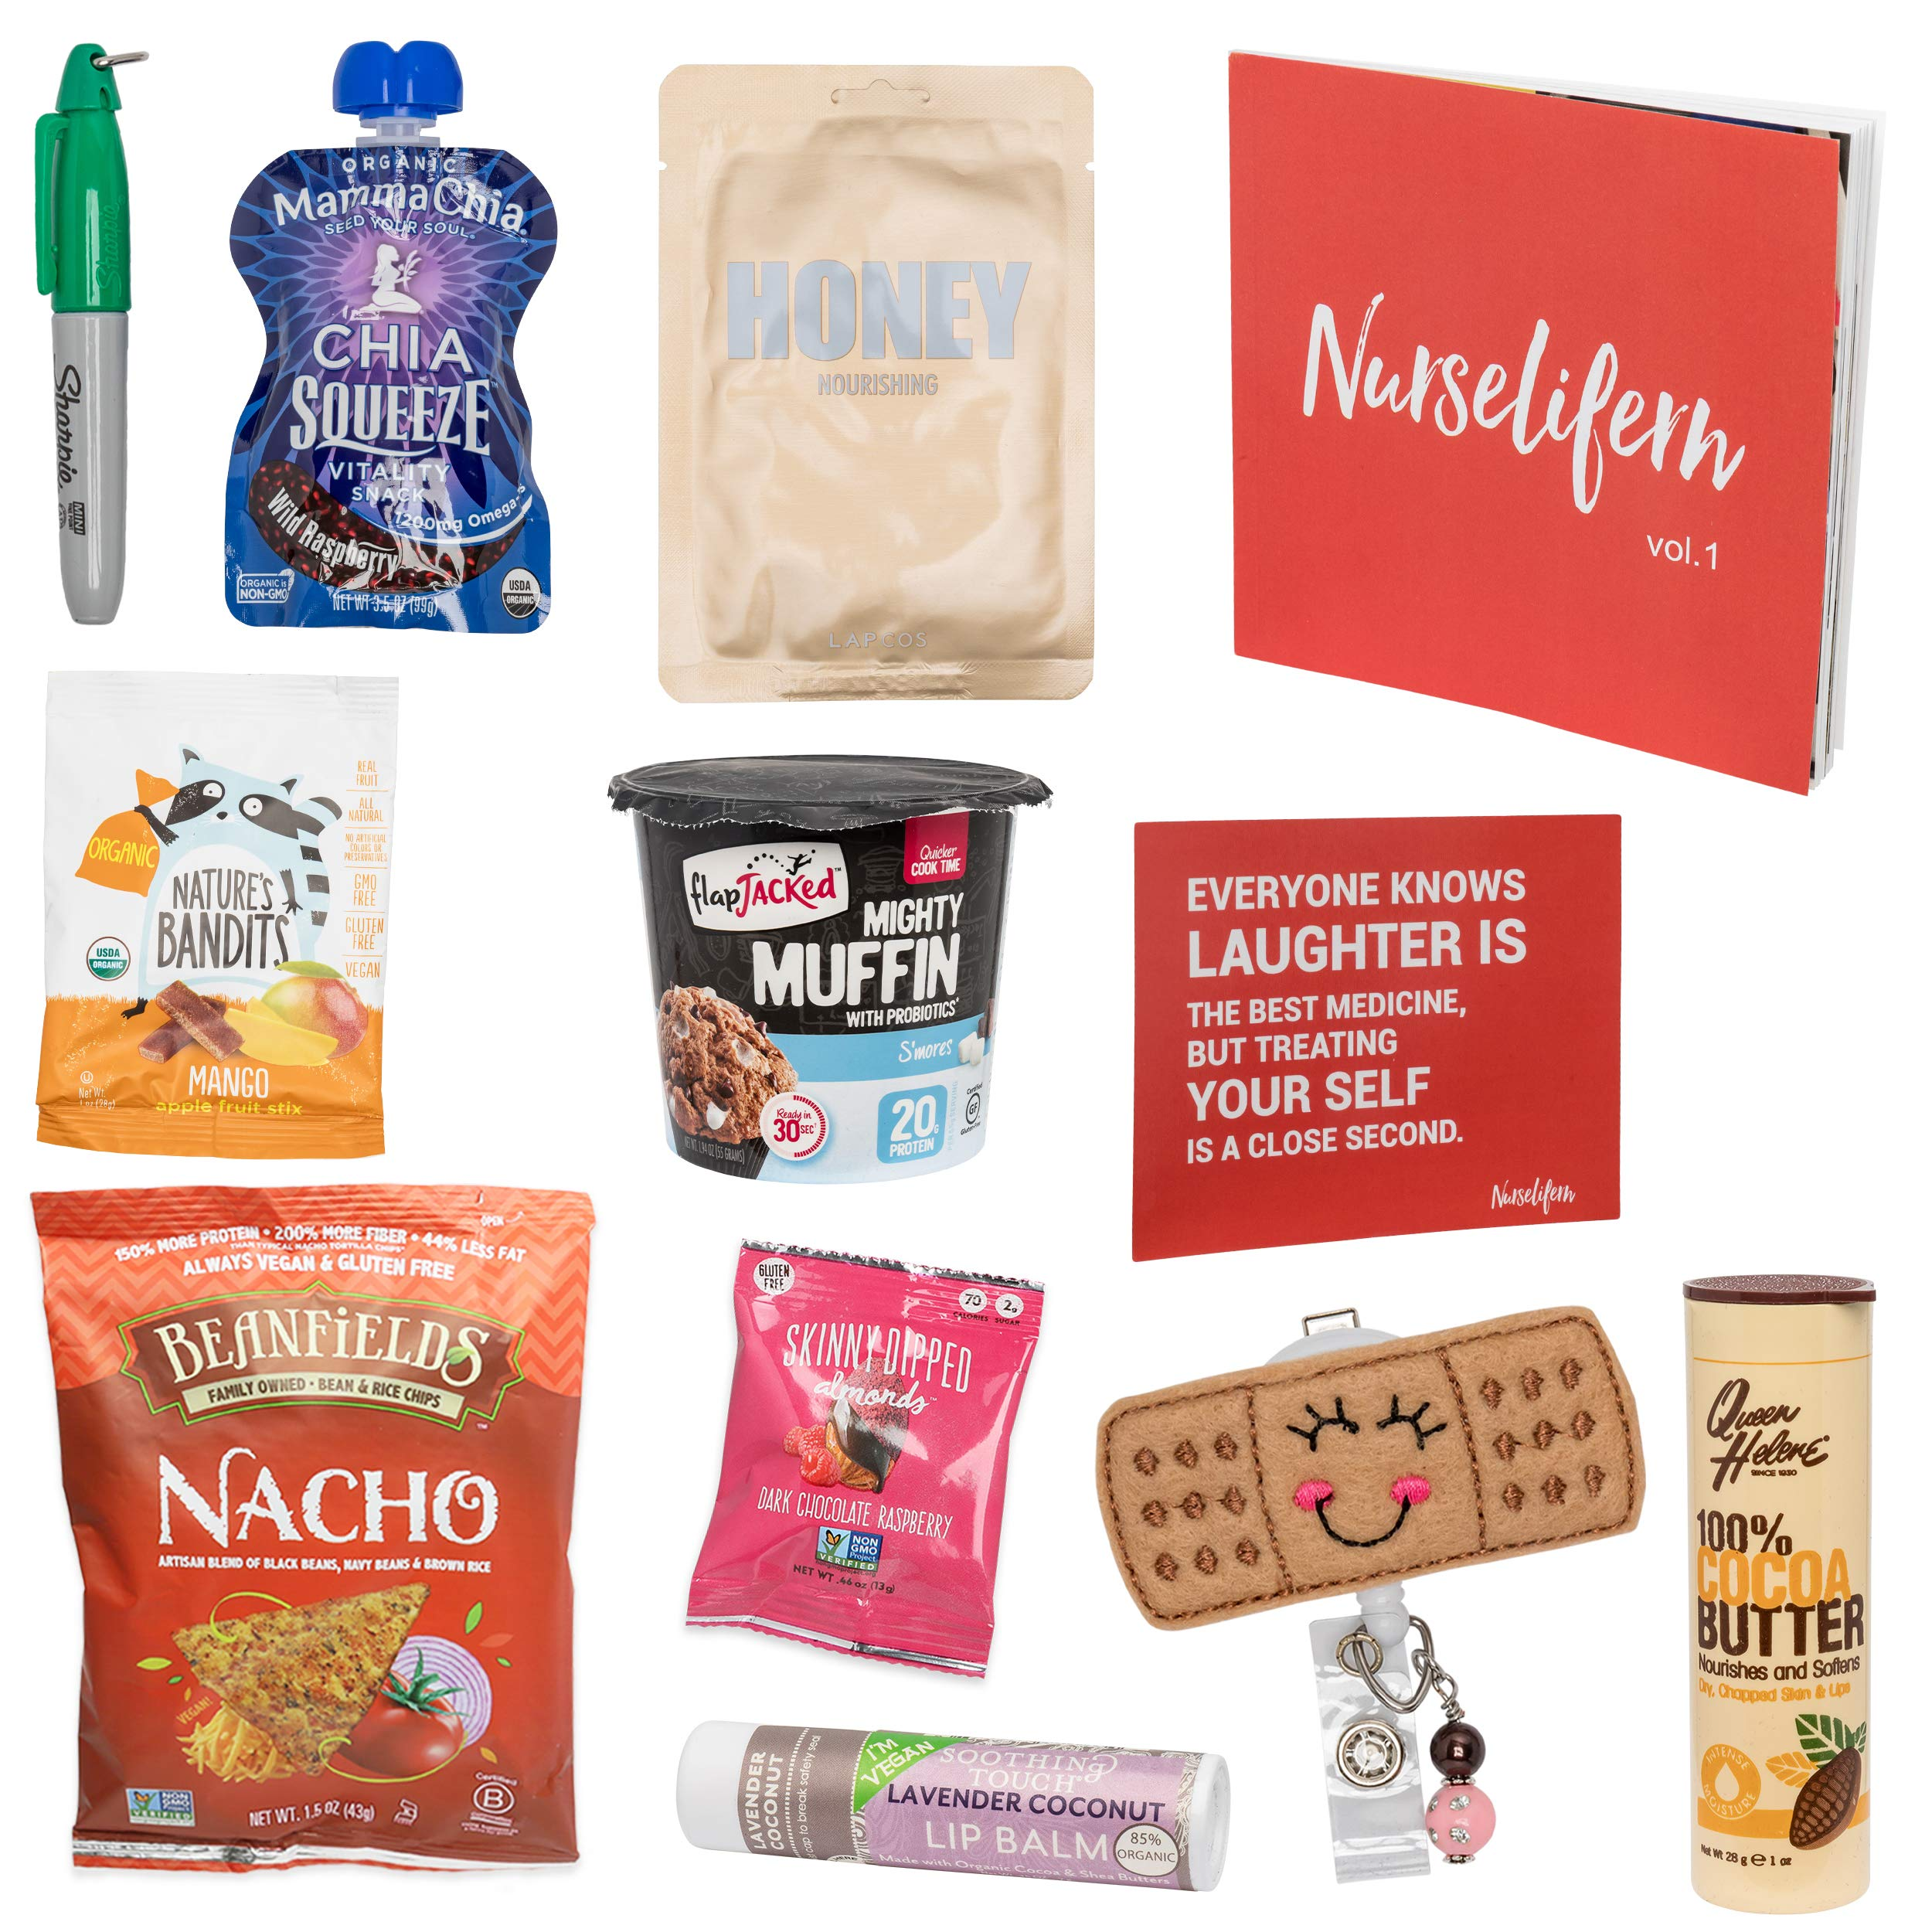 Nurse Essentials Gift Box: Nurse Badge Healthy Snacks Self Care Nurse Gift Must Haves All In One By Nurselifern by BUNNY · JAMES · (Image #2)